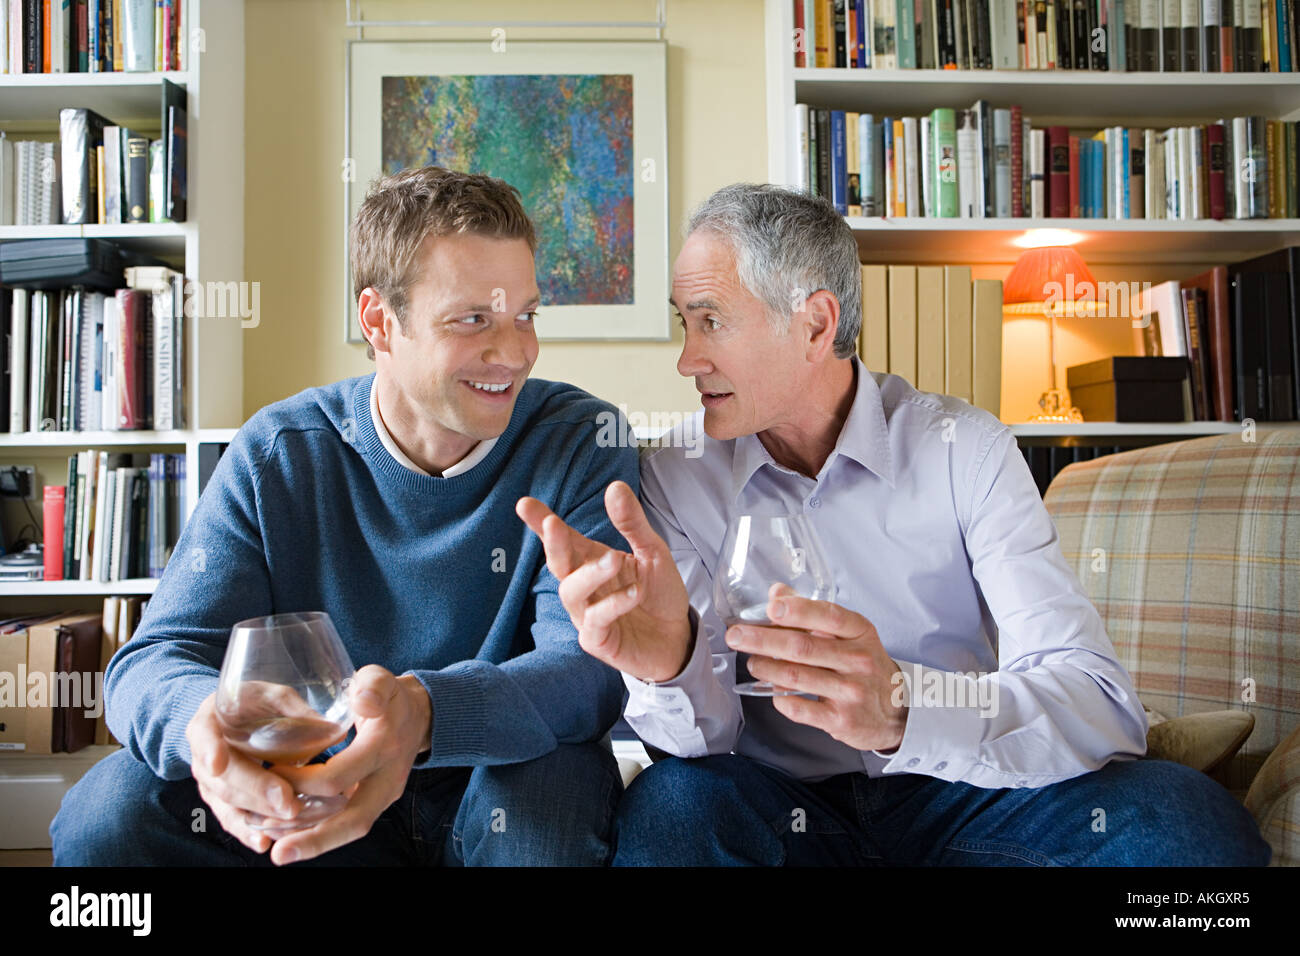 Senior man giving advice to younger man - Stock Image